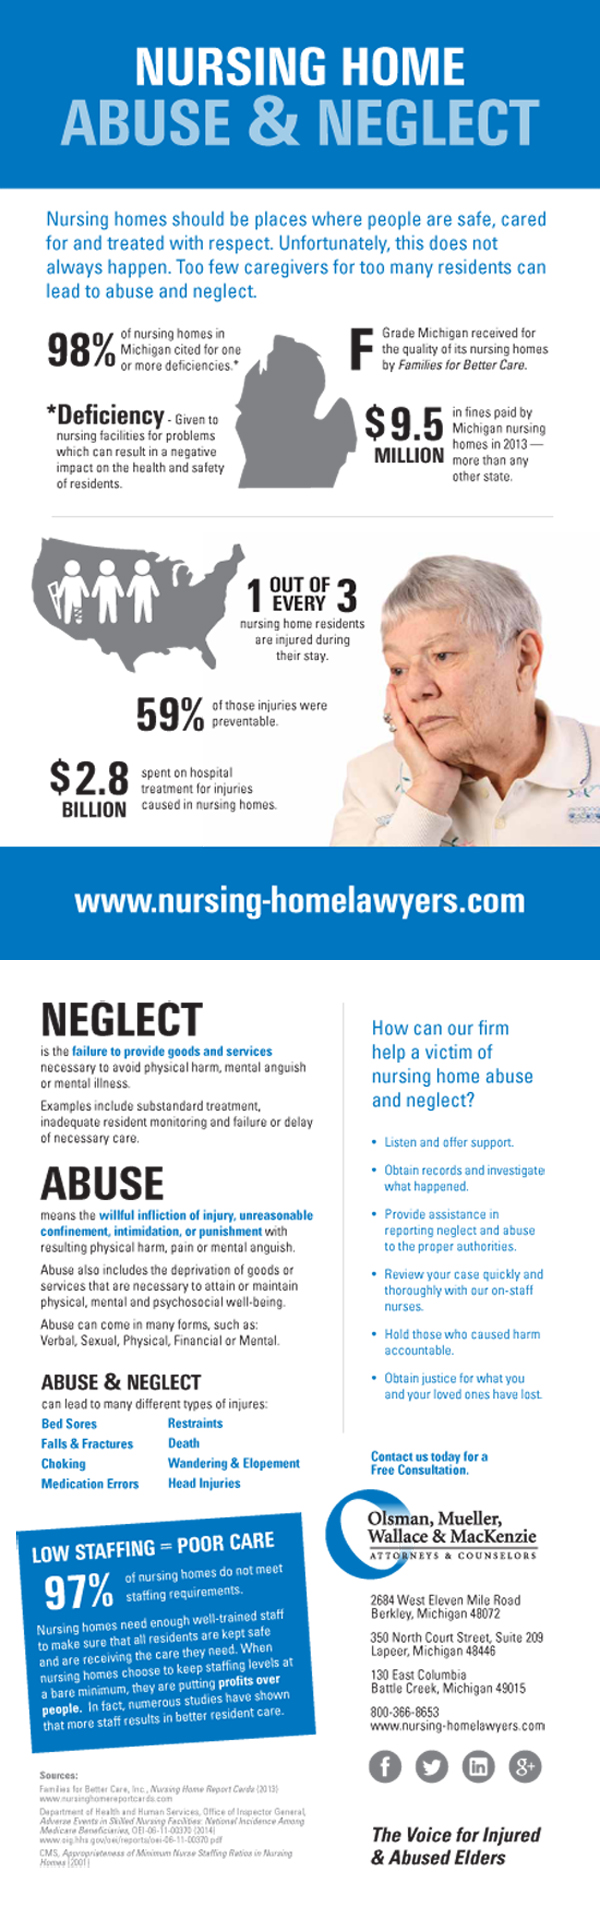 essays about elderly abuse and neglect in nursing homes Elderly abuse and neglect in nursing homes debra k showers kaplan university elderly abuse and neglect in nursing homes are nursing homes abusing and neglecting the elderly.